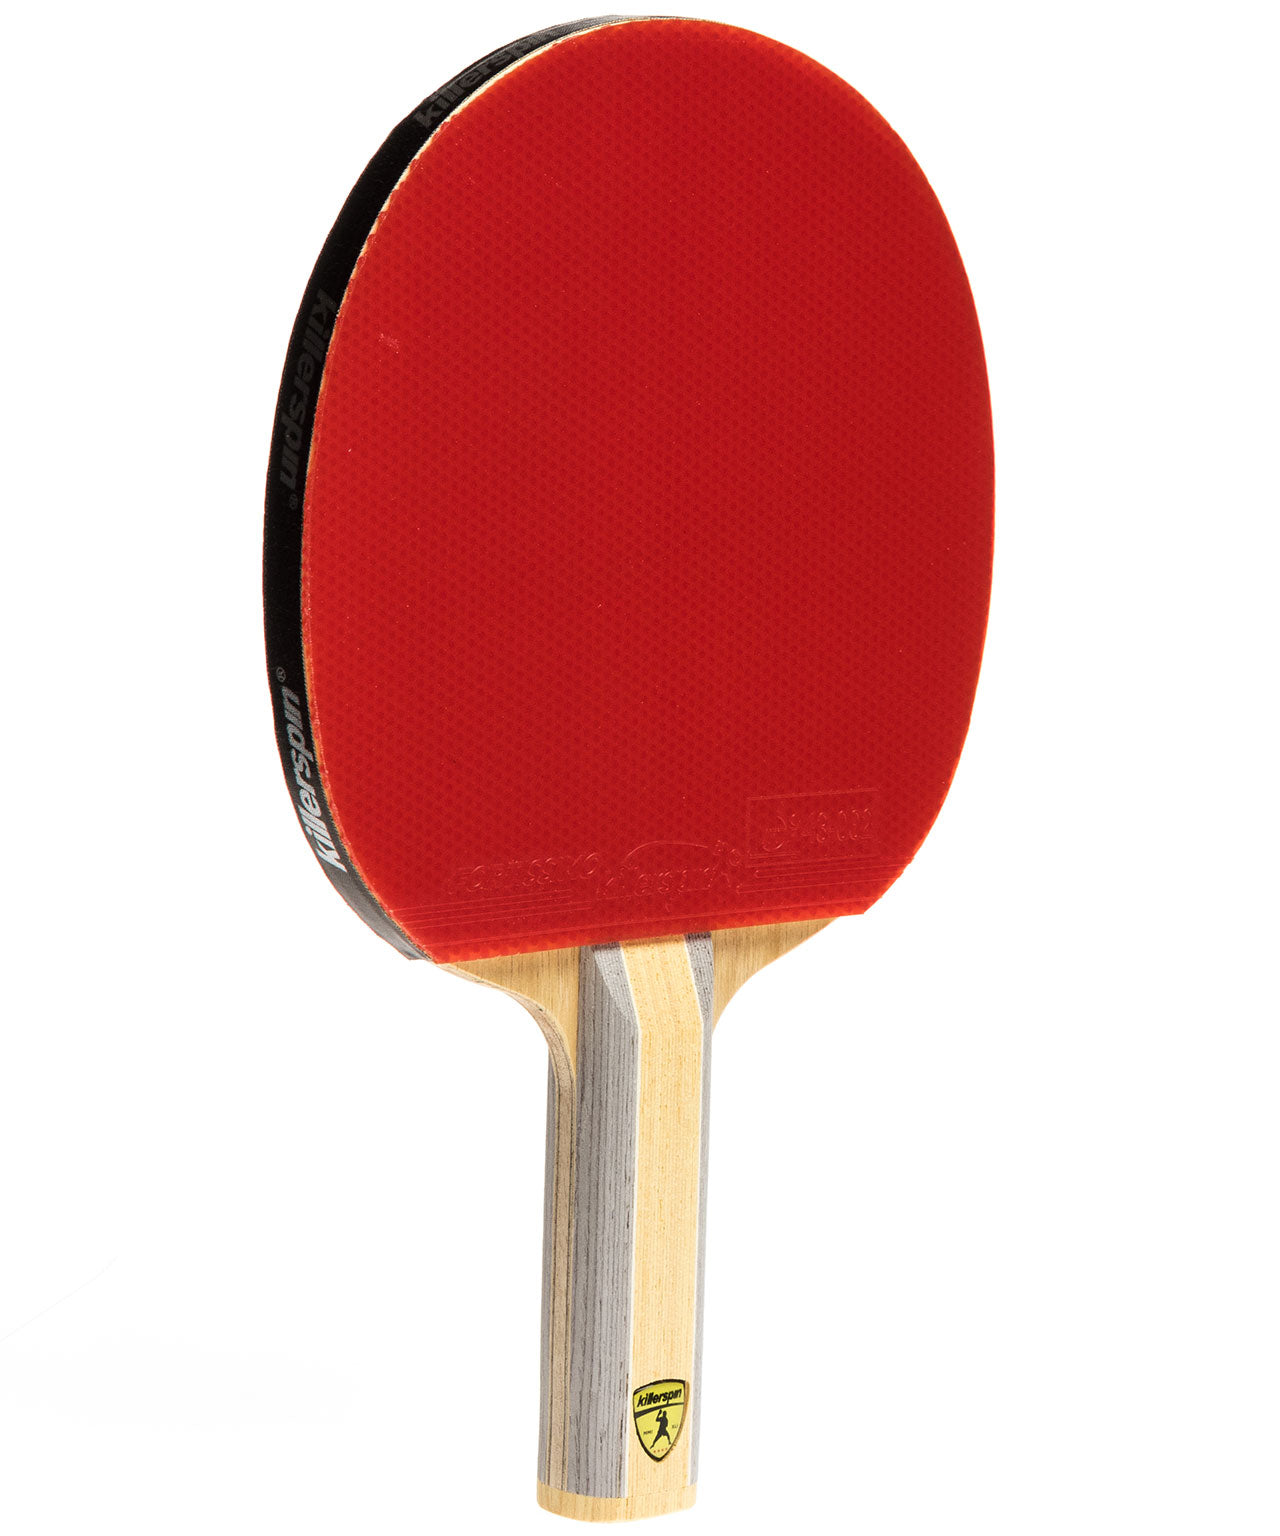 Killerspin Ping Pong Racquet Diamond CQ Premium - Straight Red Fortissimo Rubber